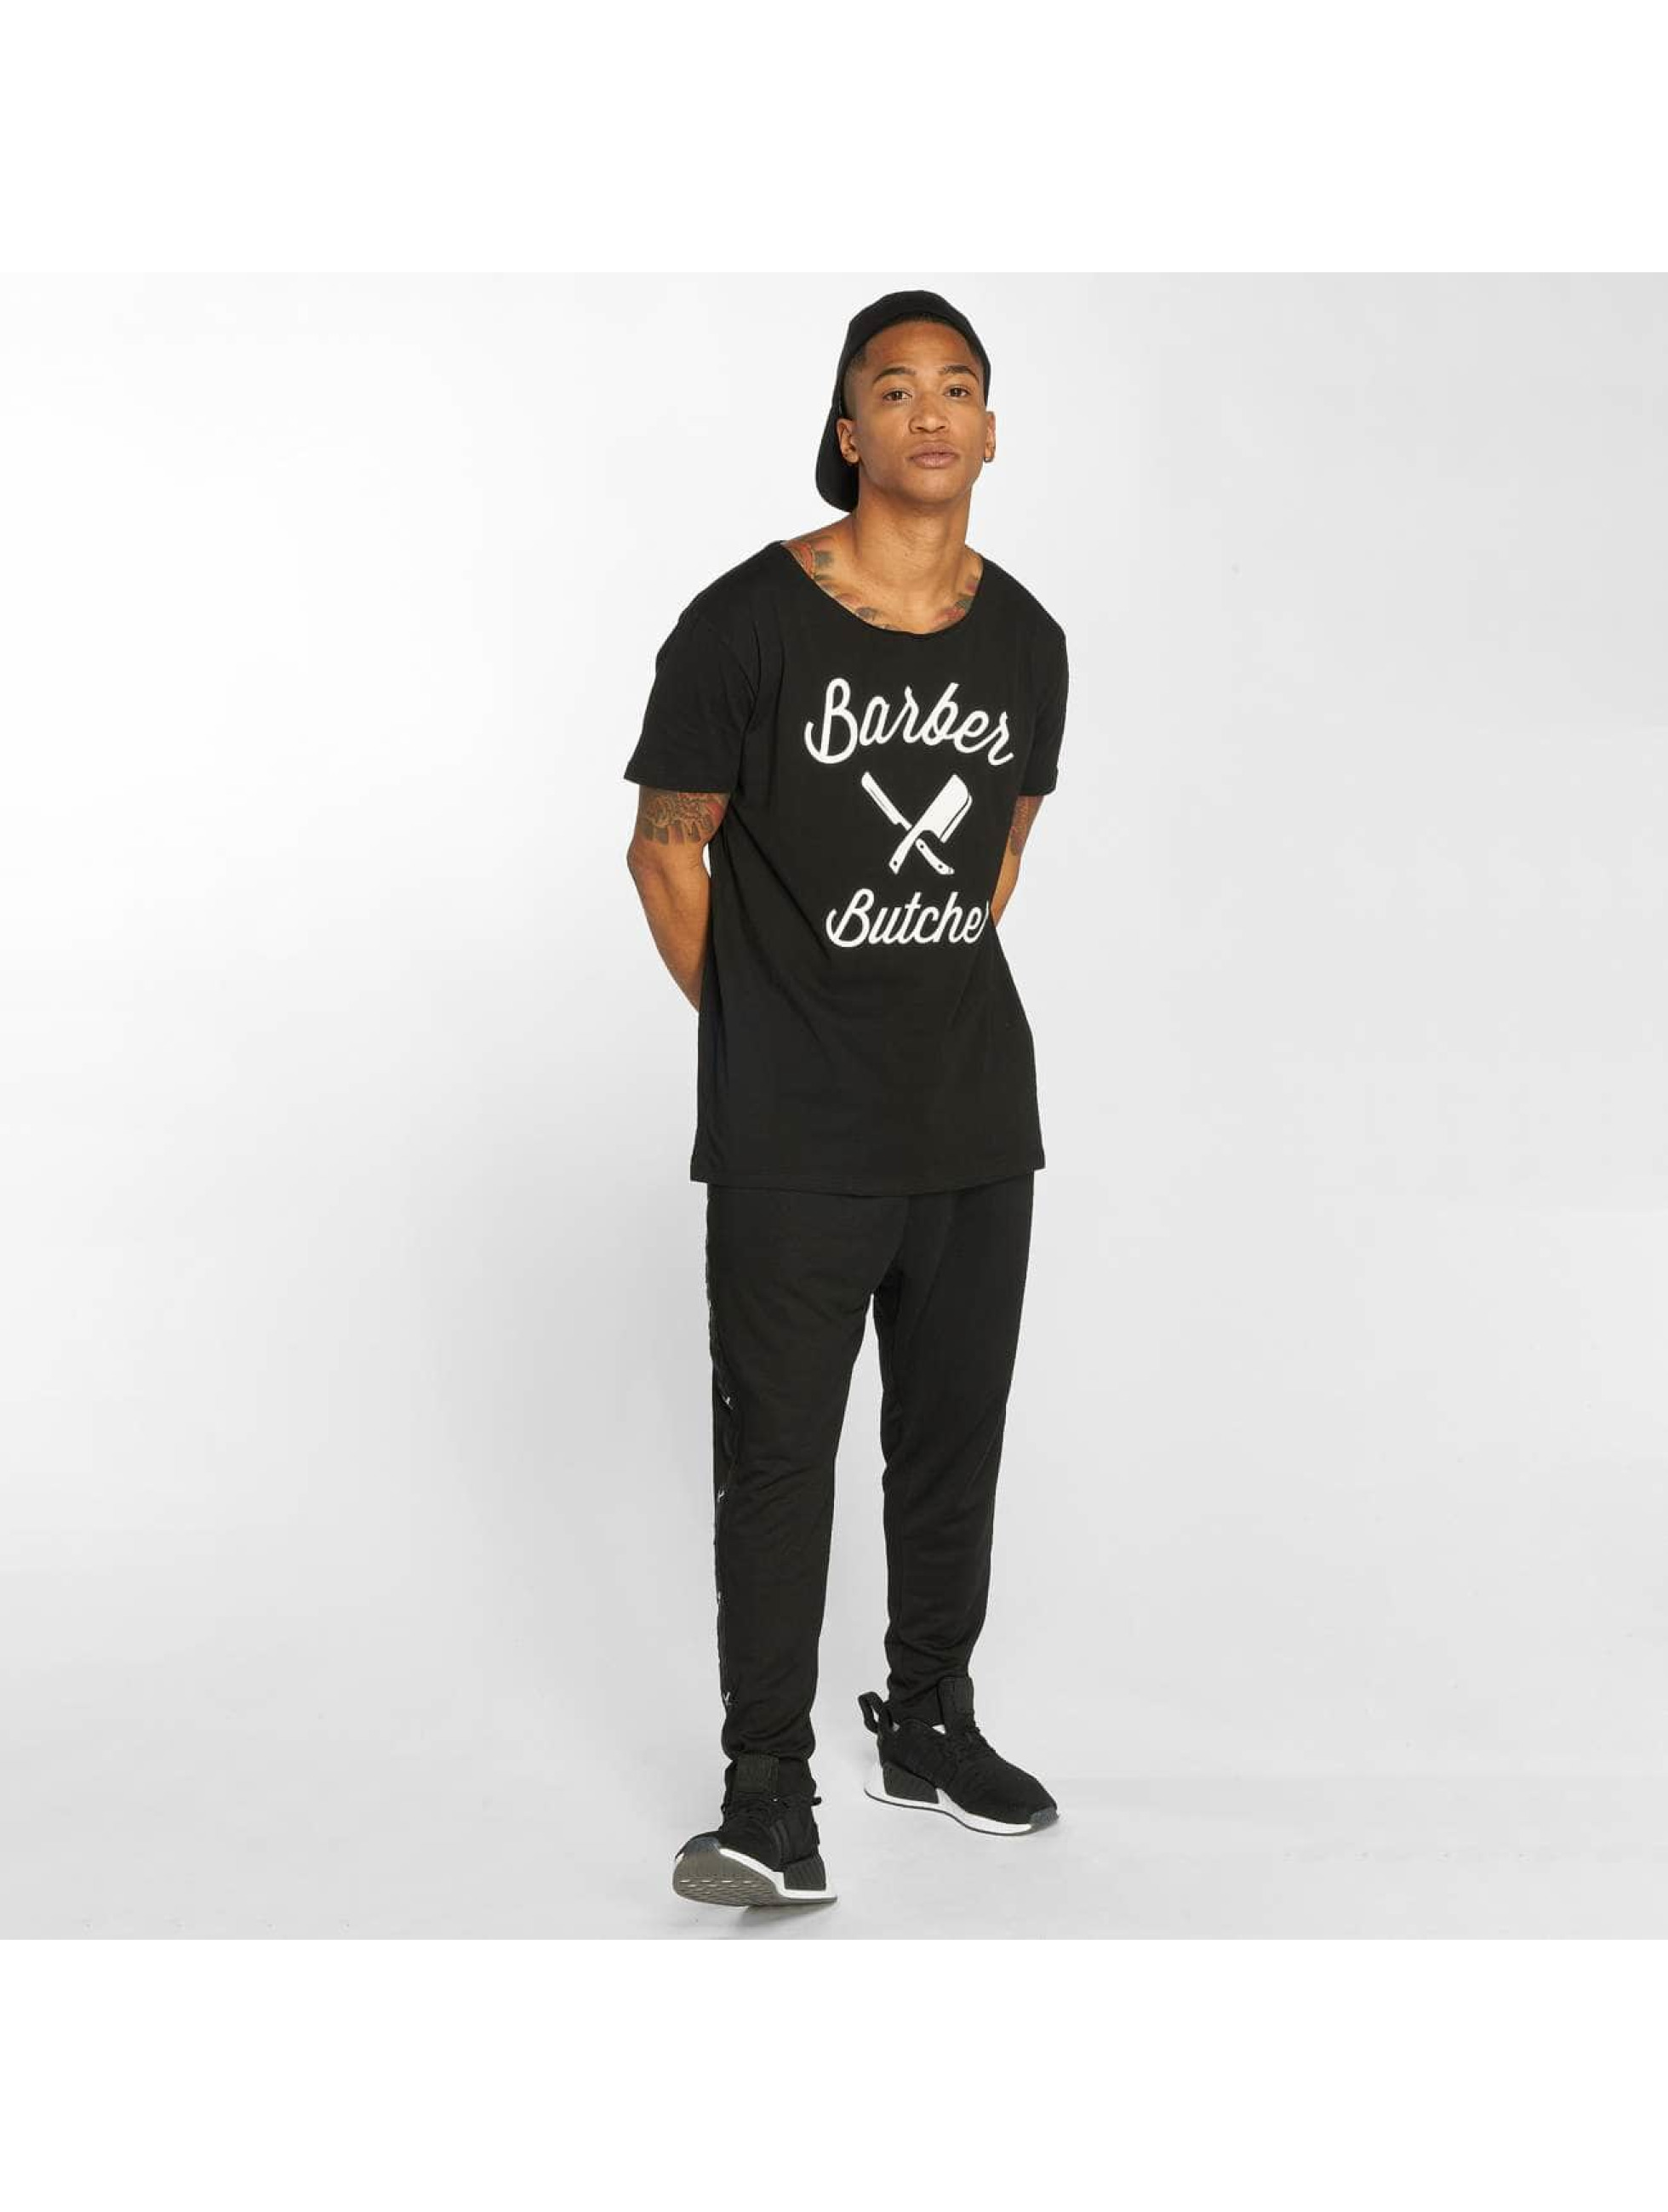 Distorted People Camiseta People BB Blades Cutted negro